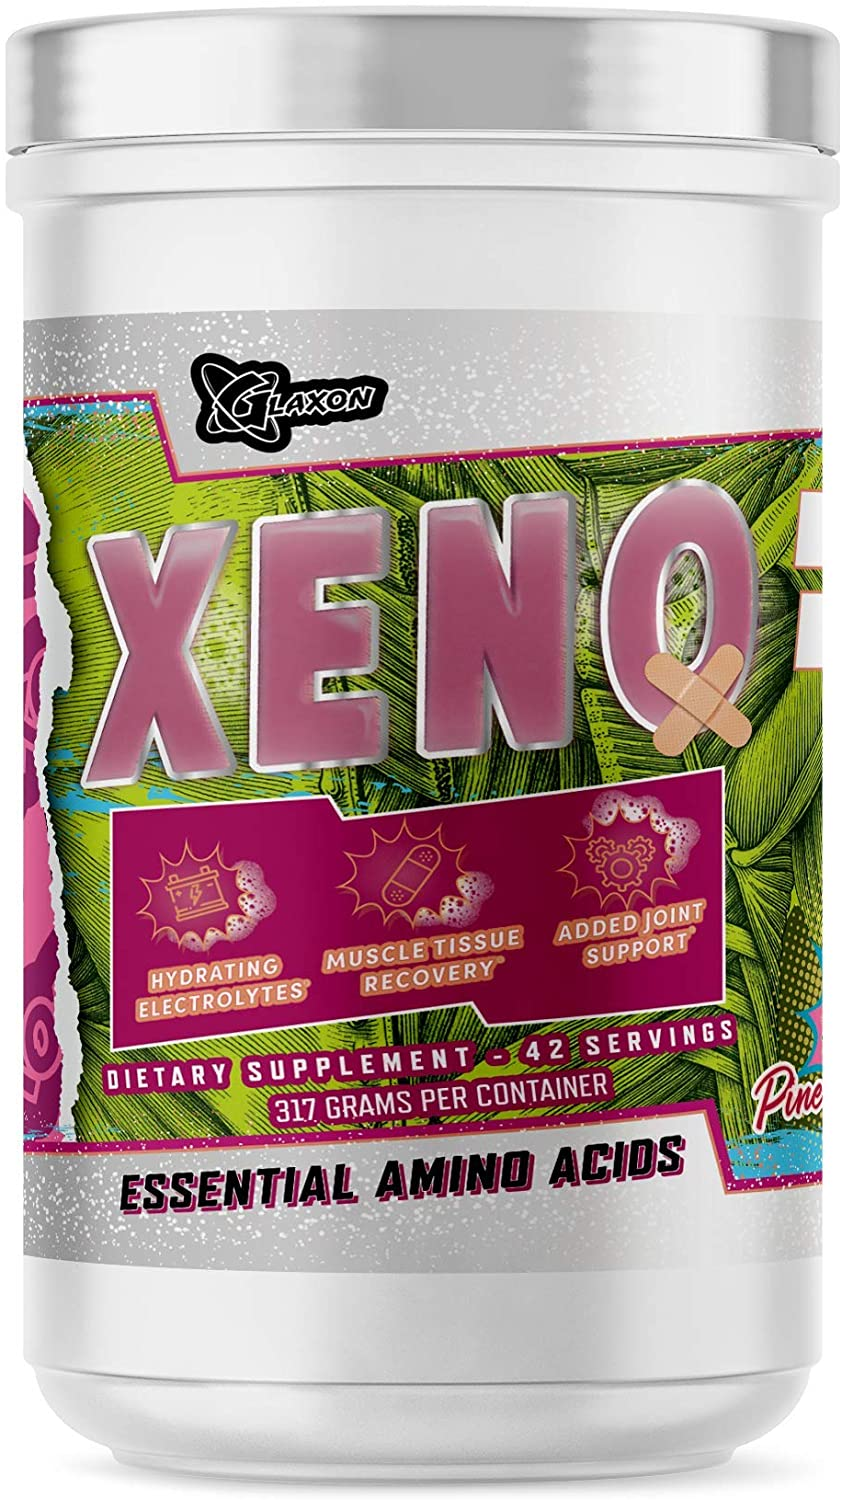 Glaxon Xeno Peach Godis Flavor, Essential Amino Acid Supplement, BCAA, Taurine, Electrolytes